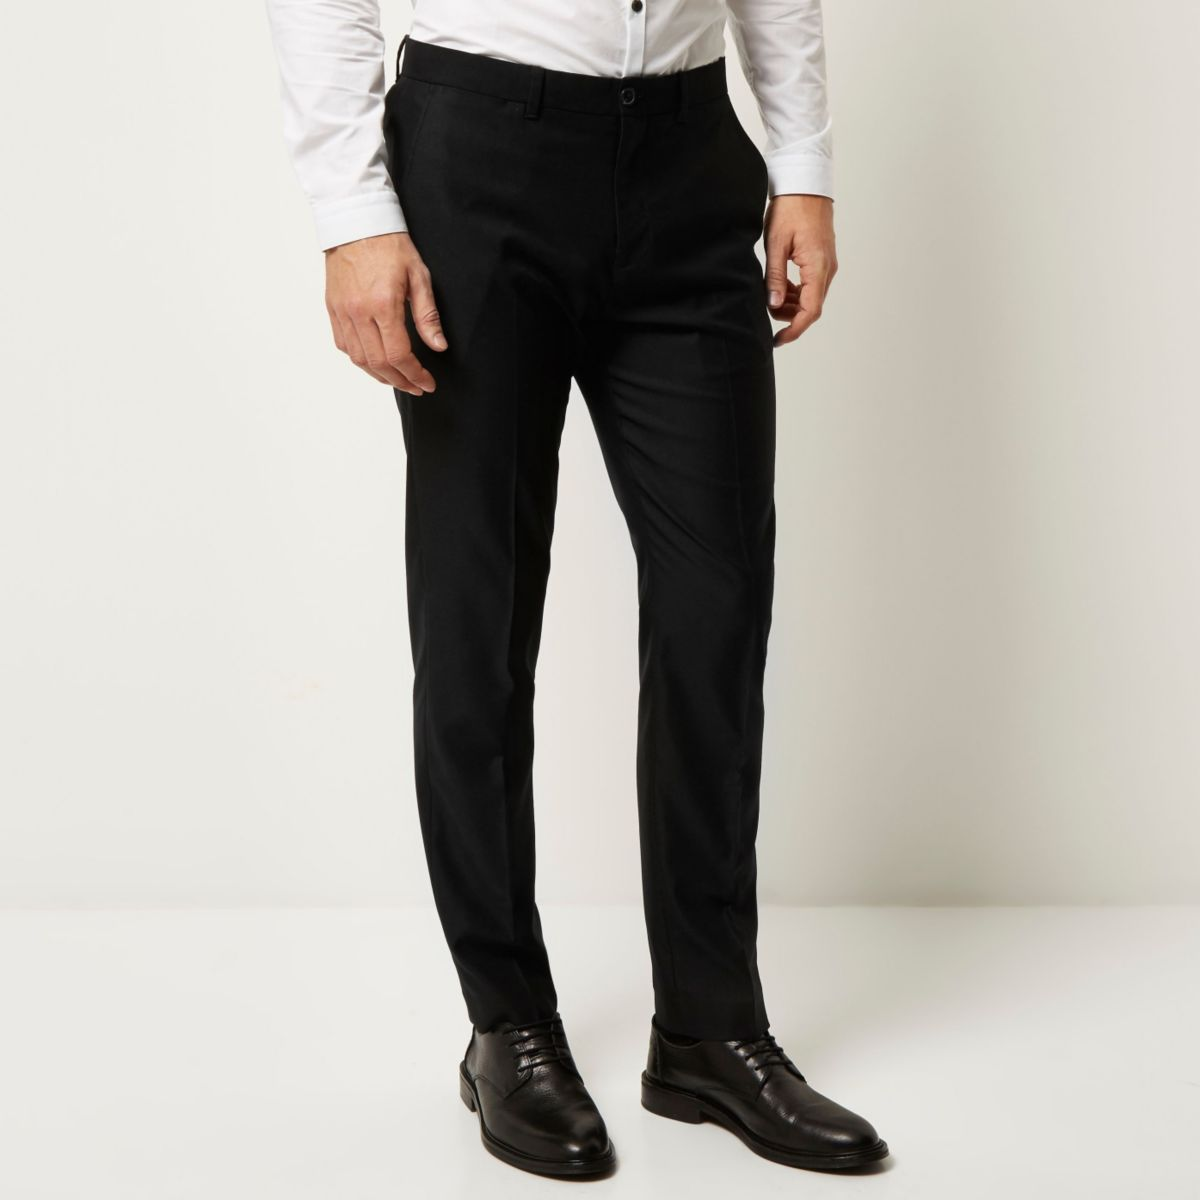 Black slim fit smart trousers